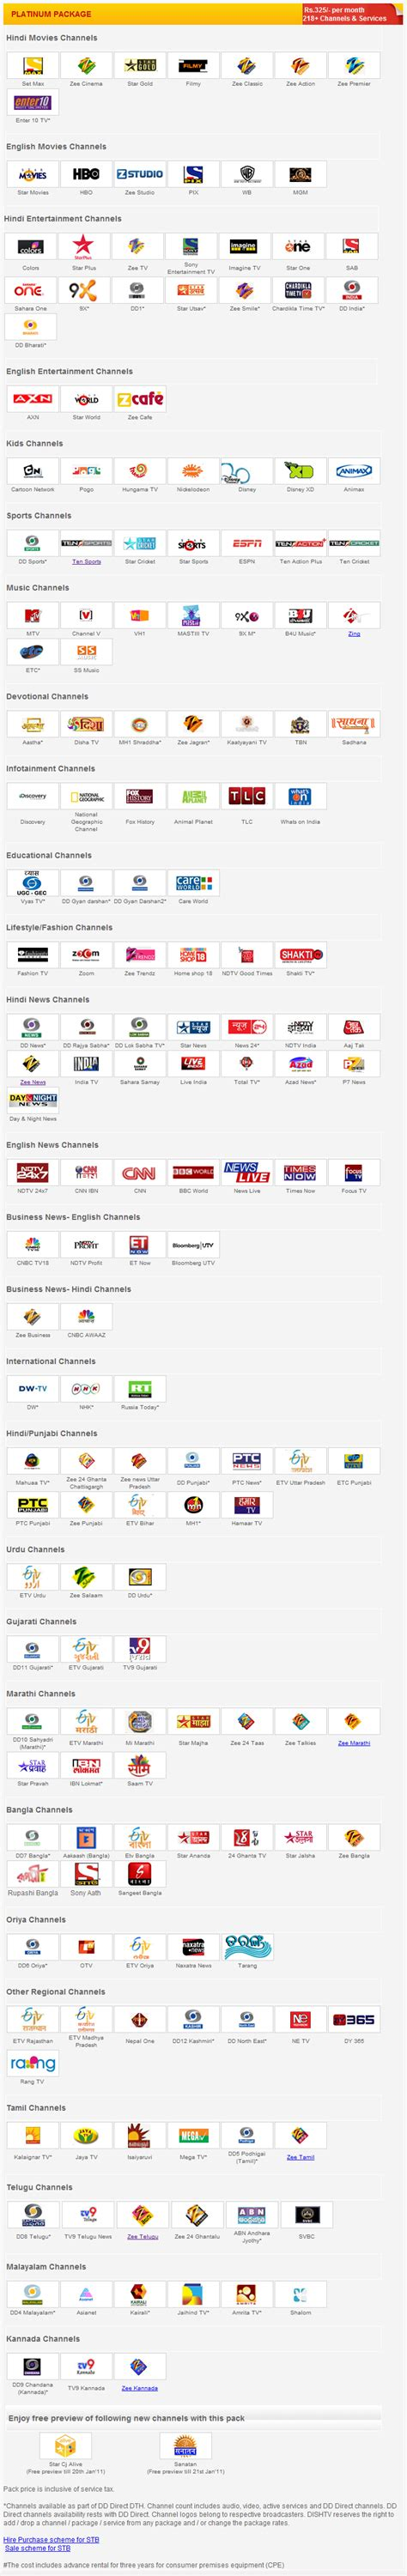 printable version of dish network channels dishtv subscription package details with channels logo